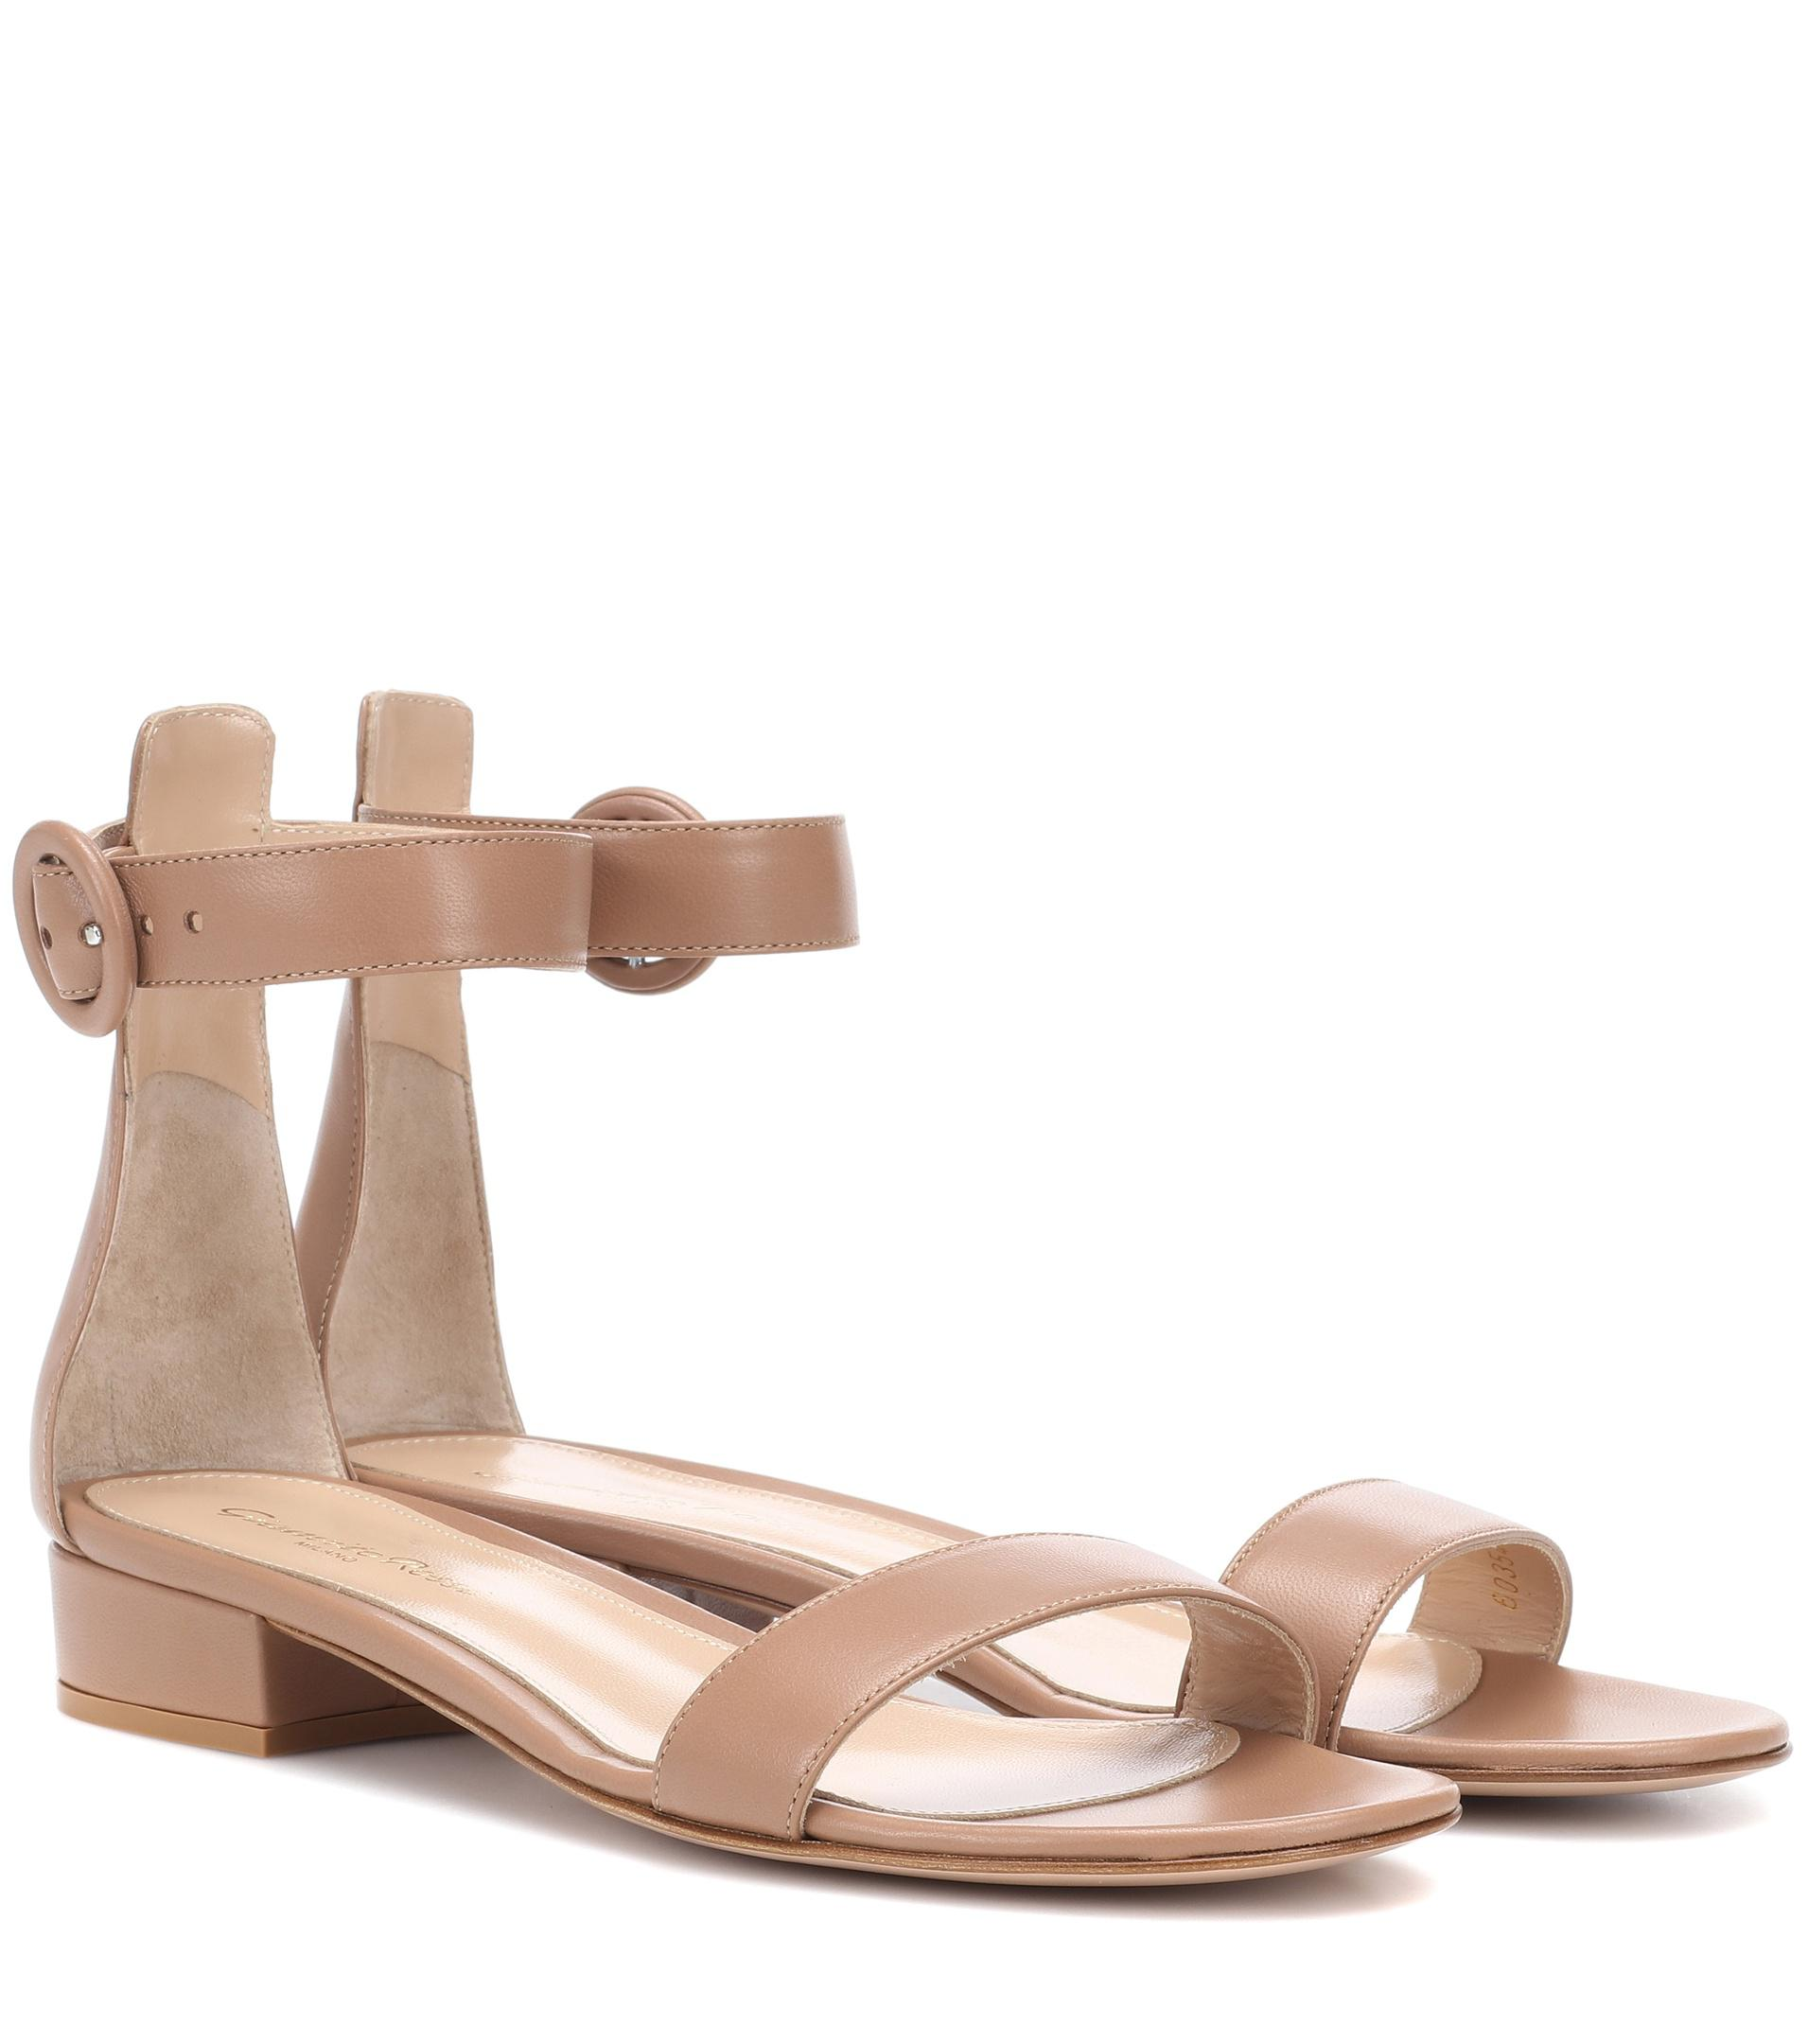 0f3d677b3de Gianvito Rossi Portofino 20 Leather Sandals - Lyst